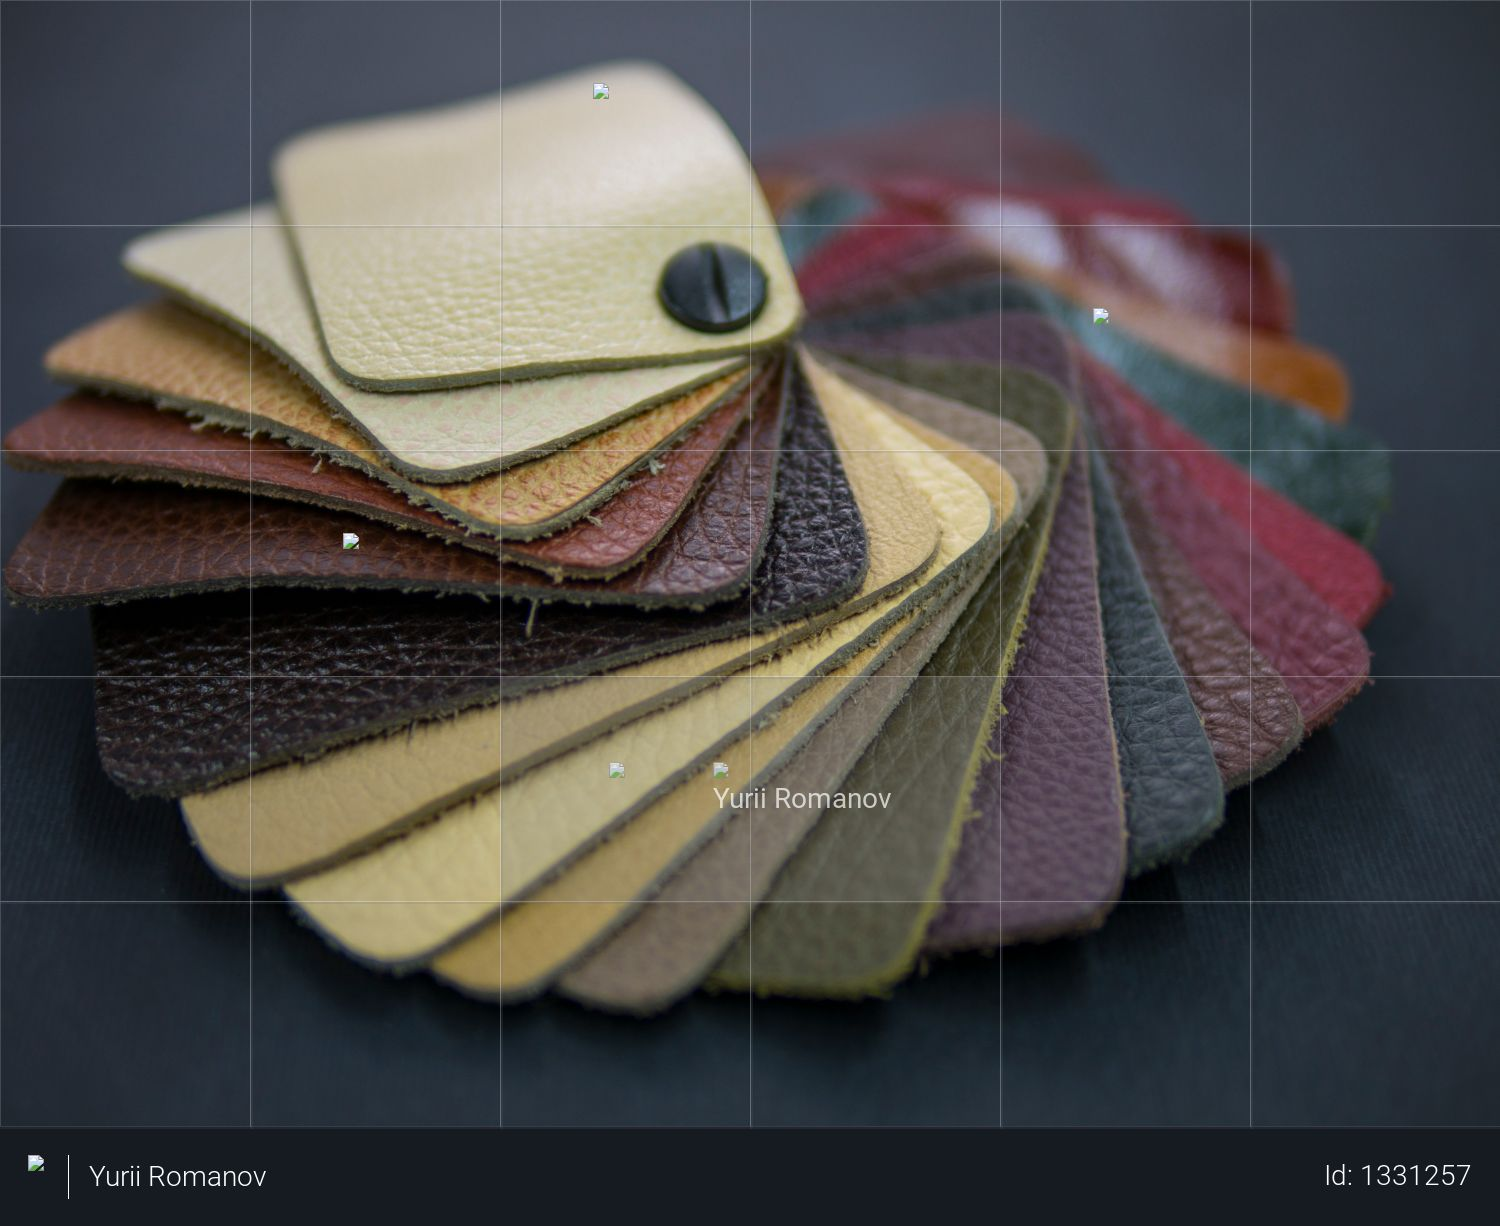 Fan catalog with colored leather samples Photo